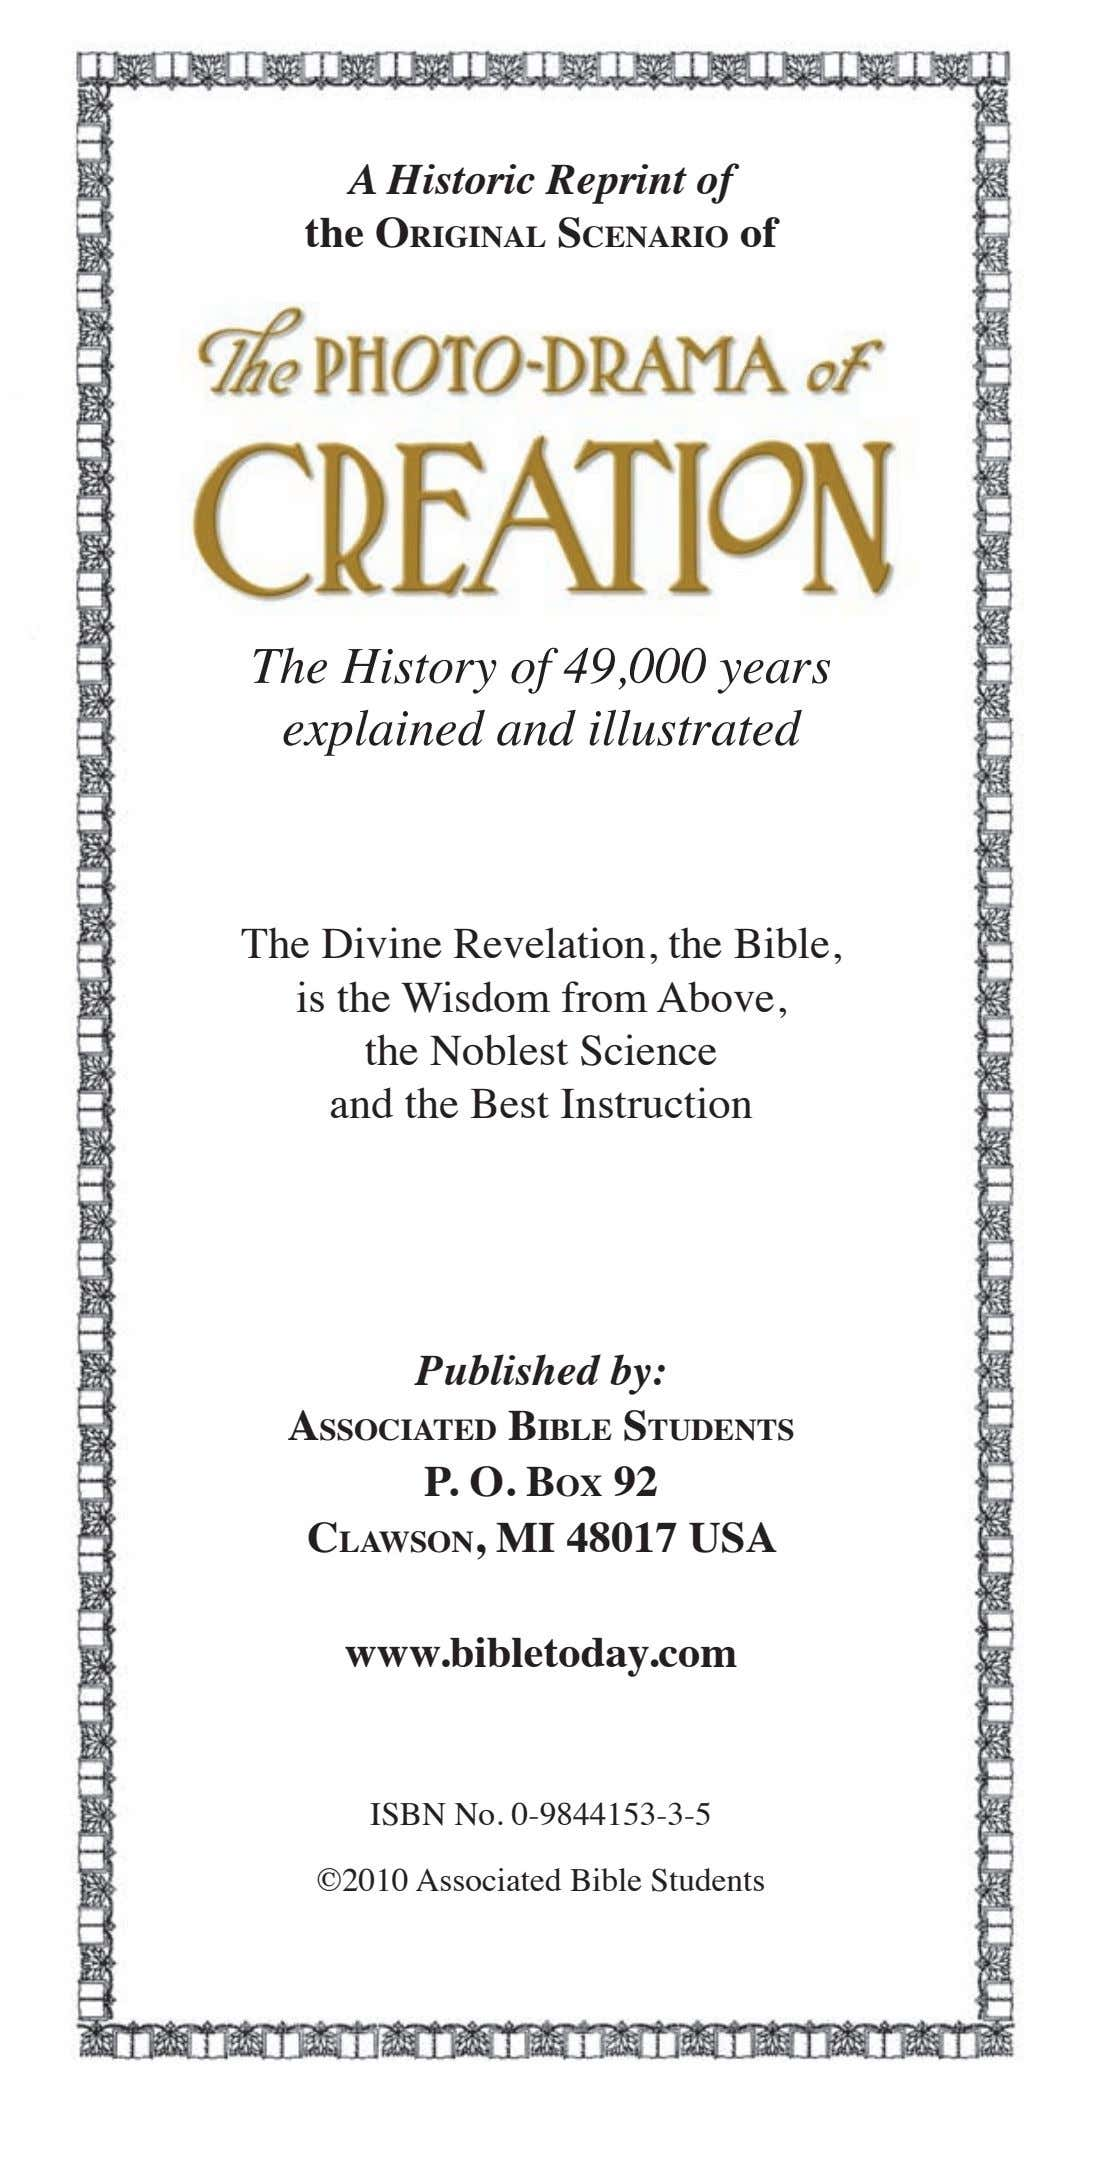 A Historic Reprint of the Original ScenariO of The History of 49,000 years explained and